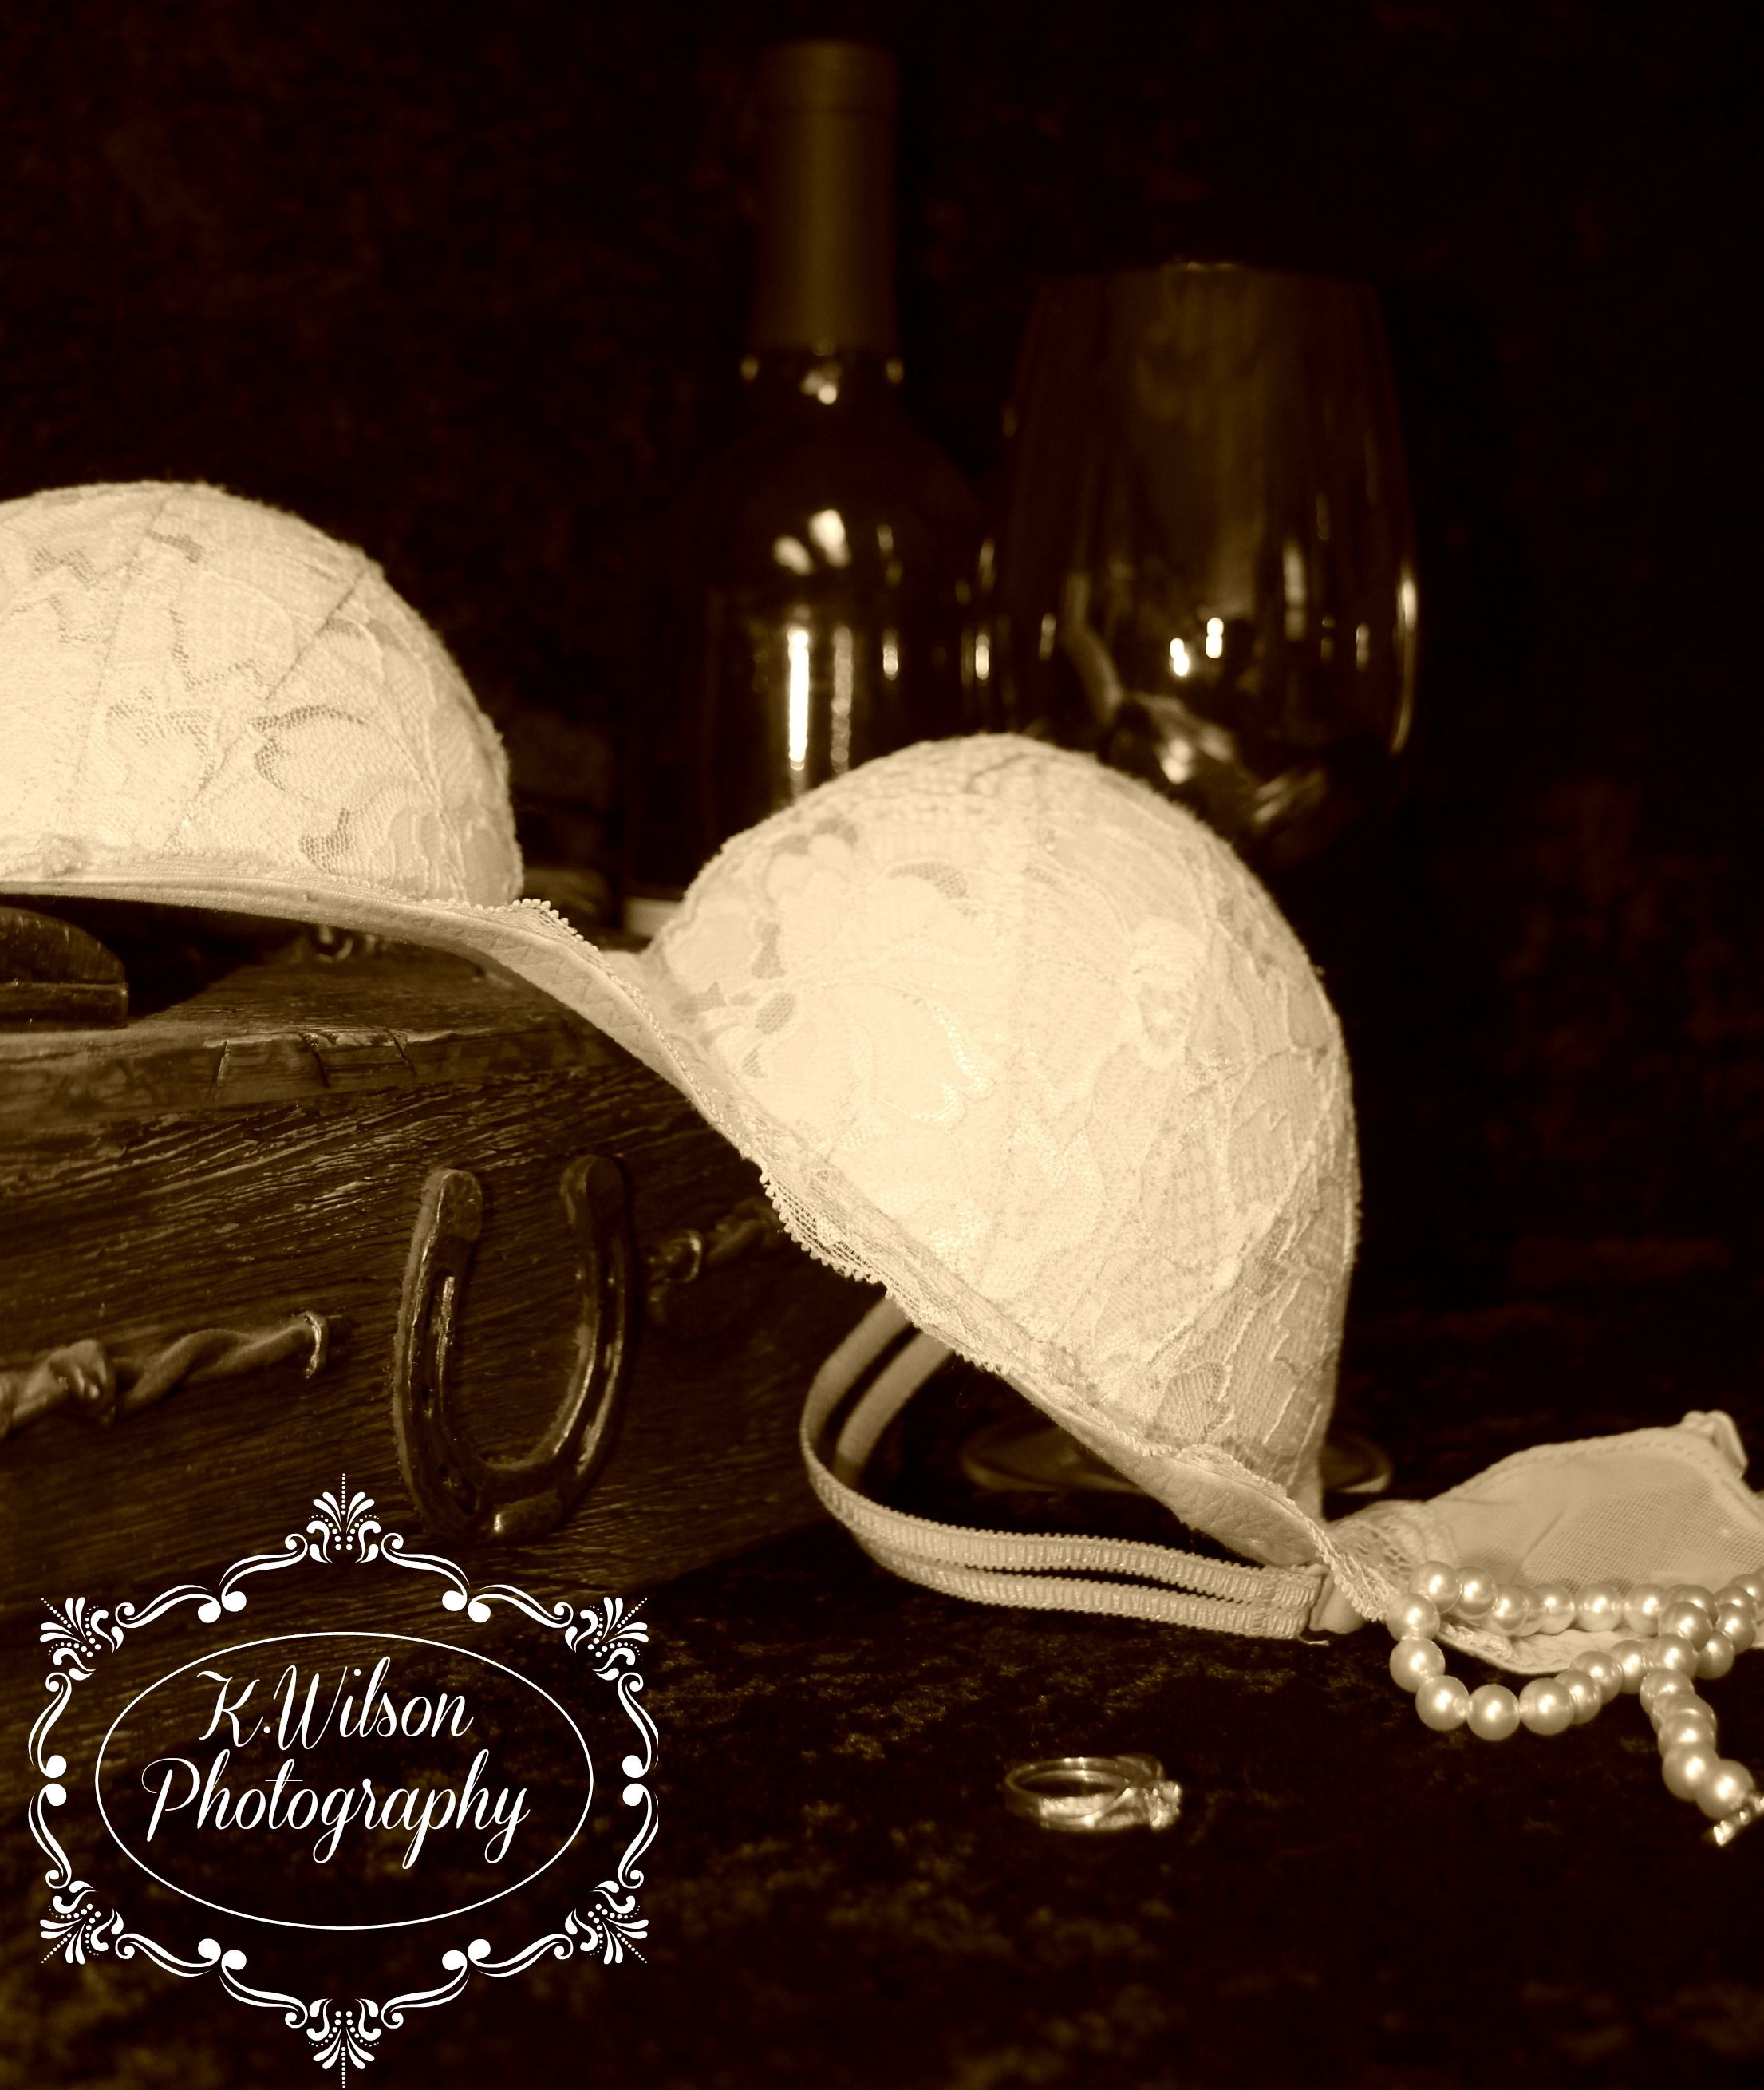 Find us on Facebook - We do boudoir shoots too. - https://www.facebook.com/memorablemomentsphotographykwilson/